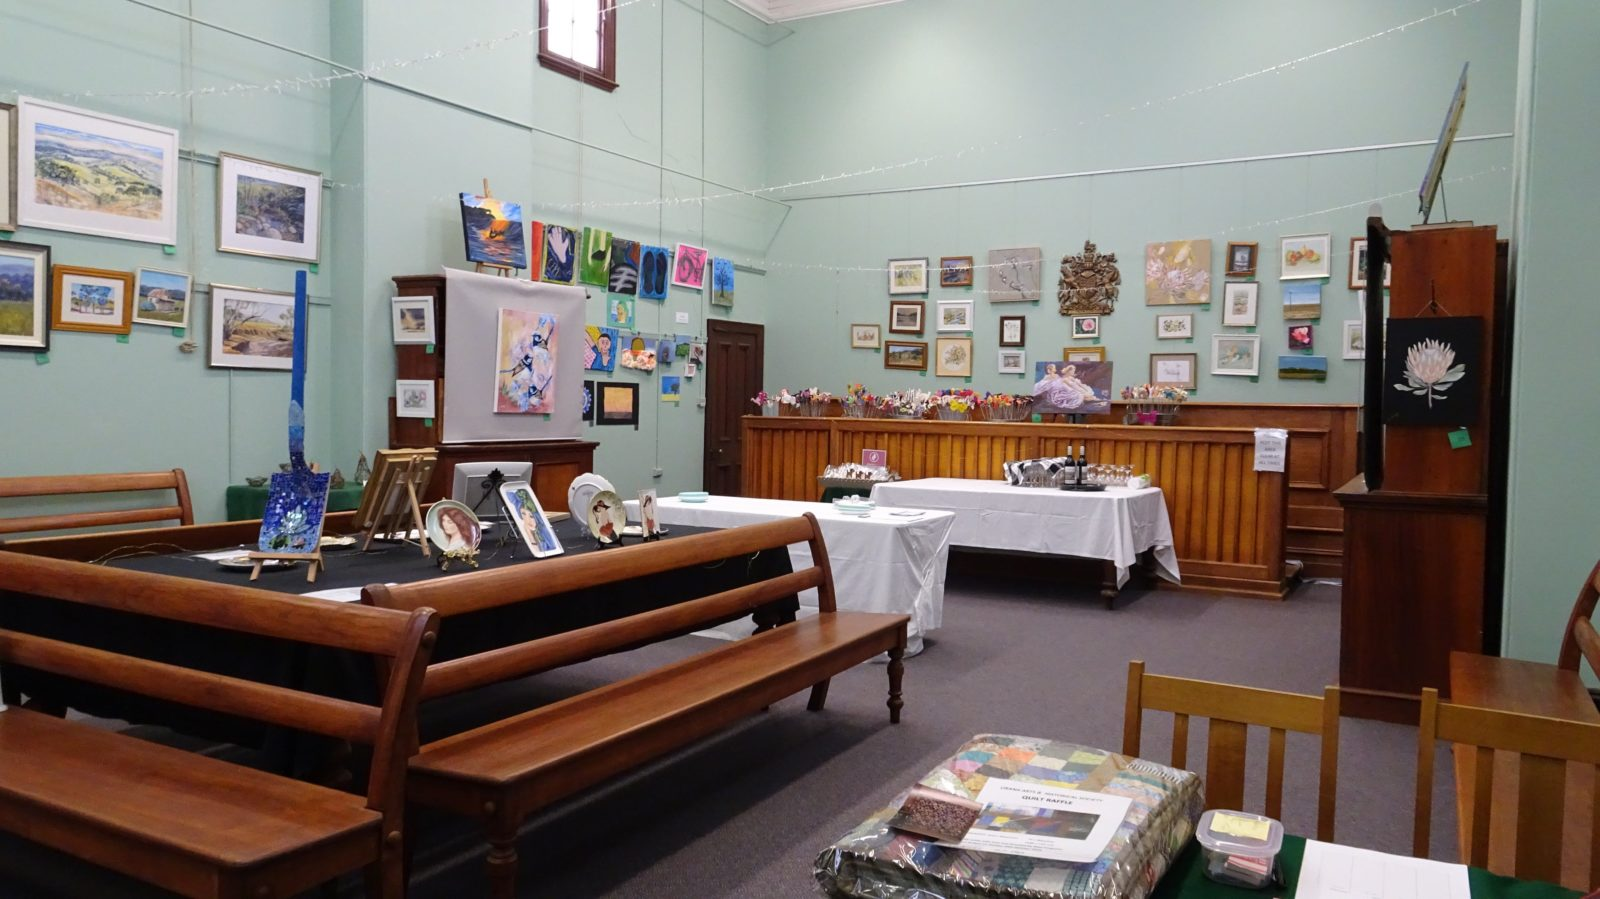 Art work is displayed around the Old Courthouse Museum. All artwork is for Sale.